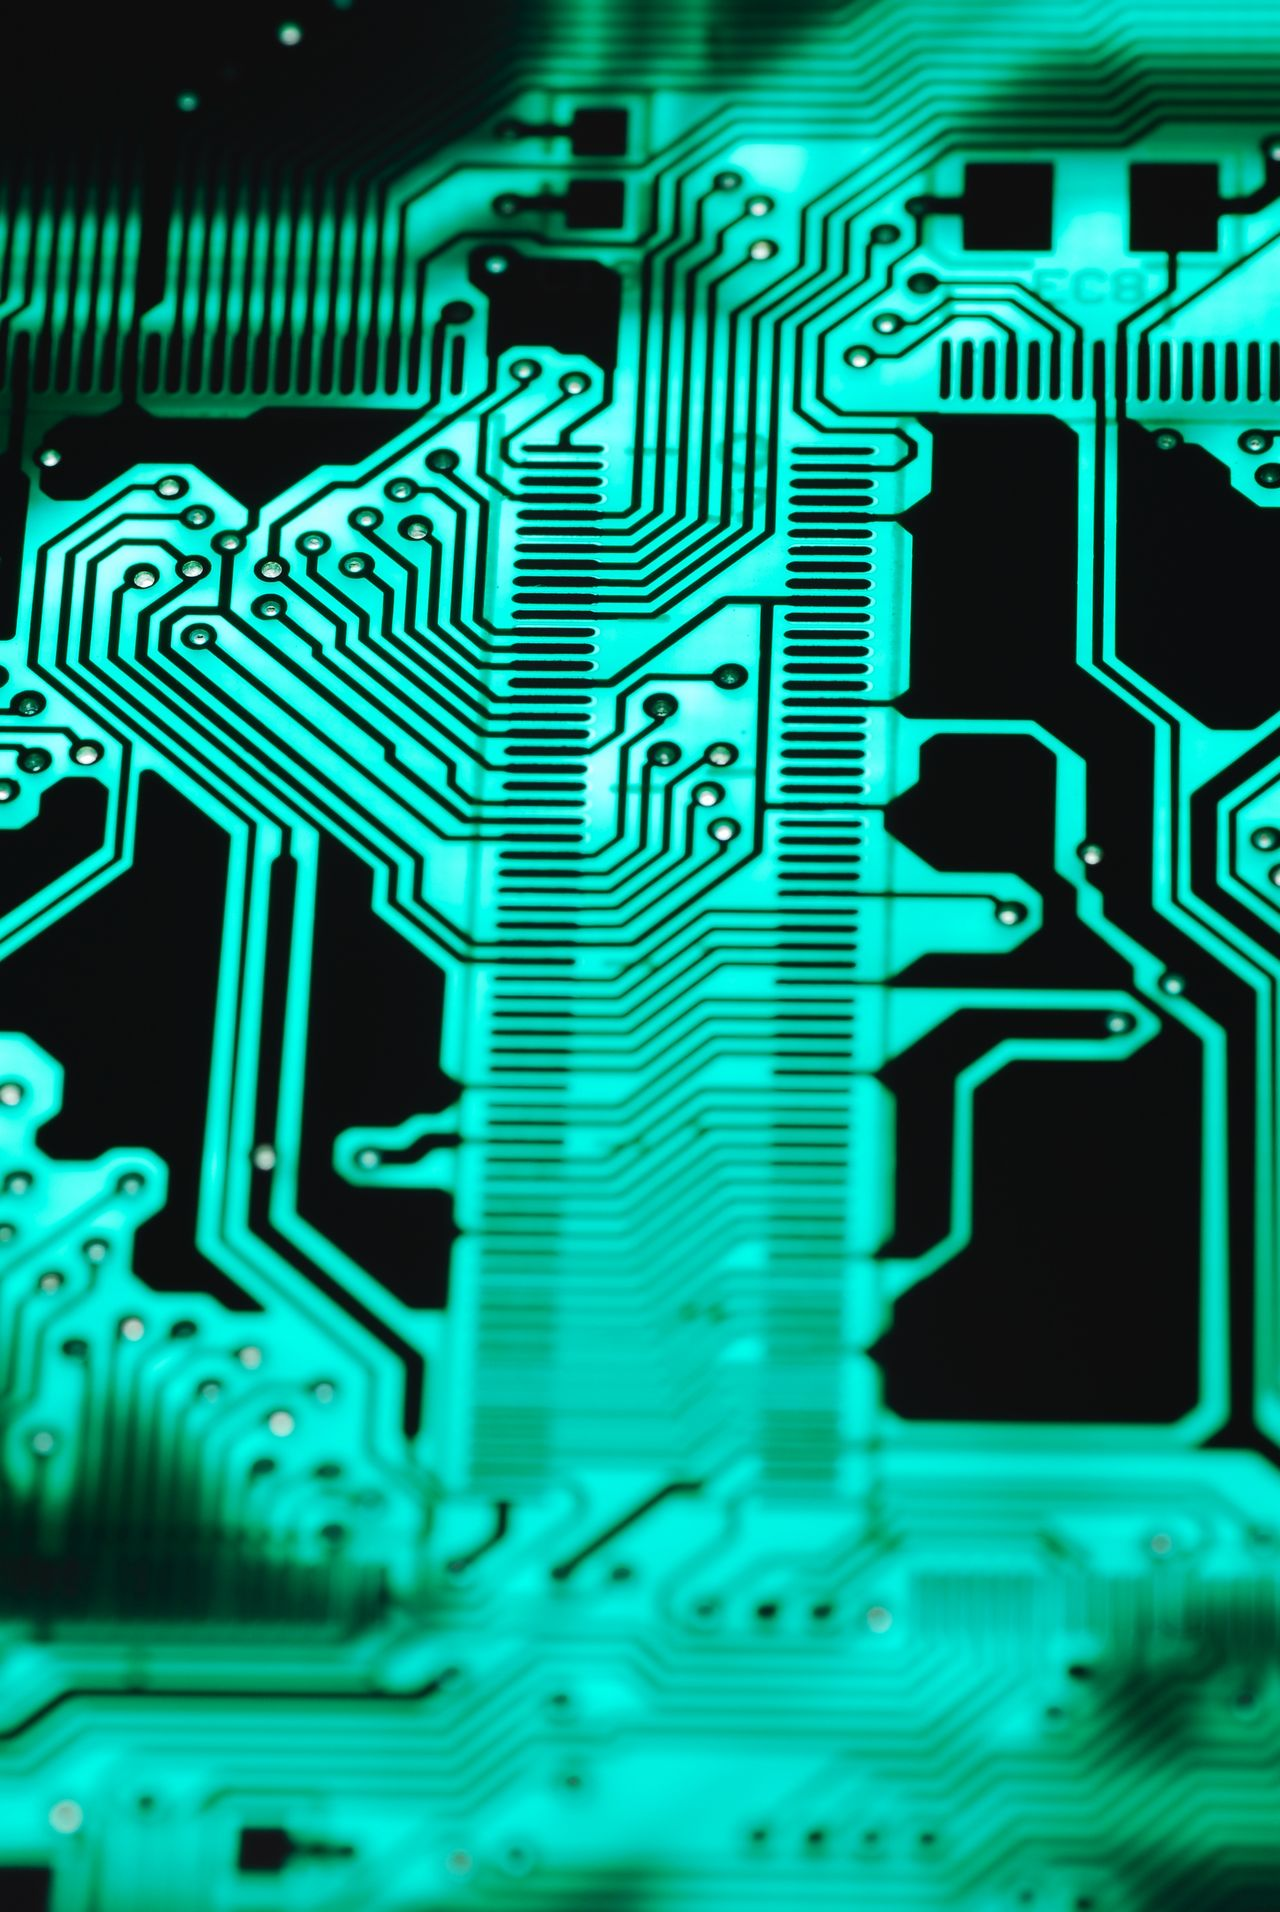 Beautiful stock photos of technology, circuit board, electronics industry, computer chip